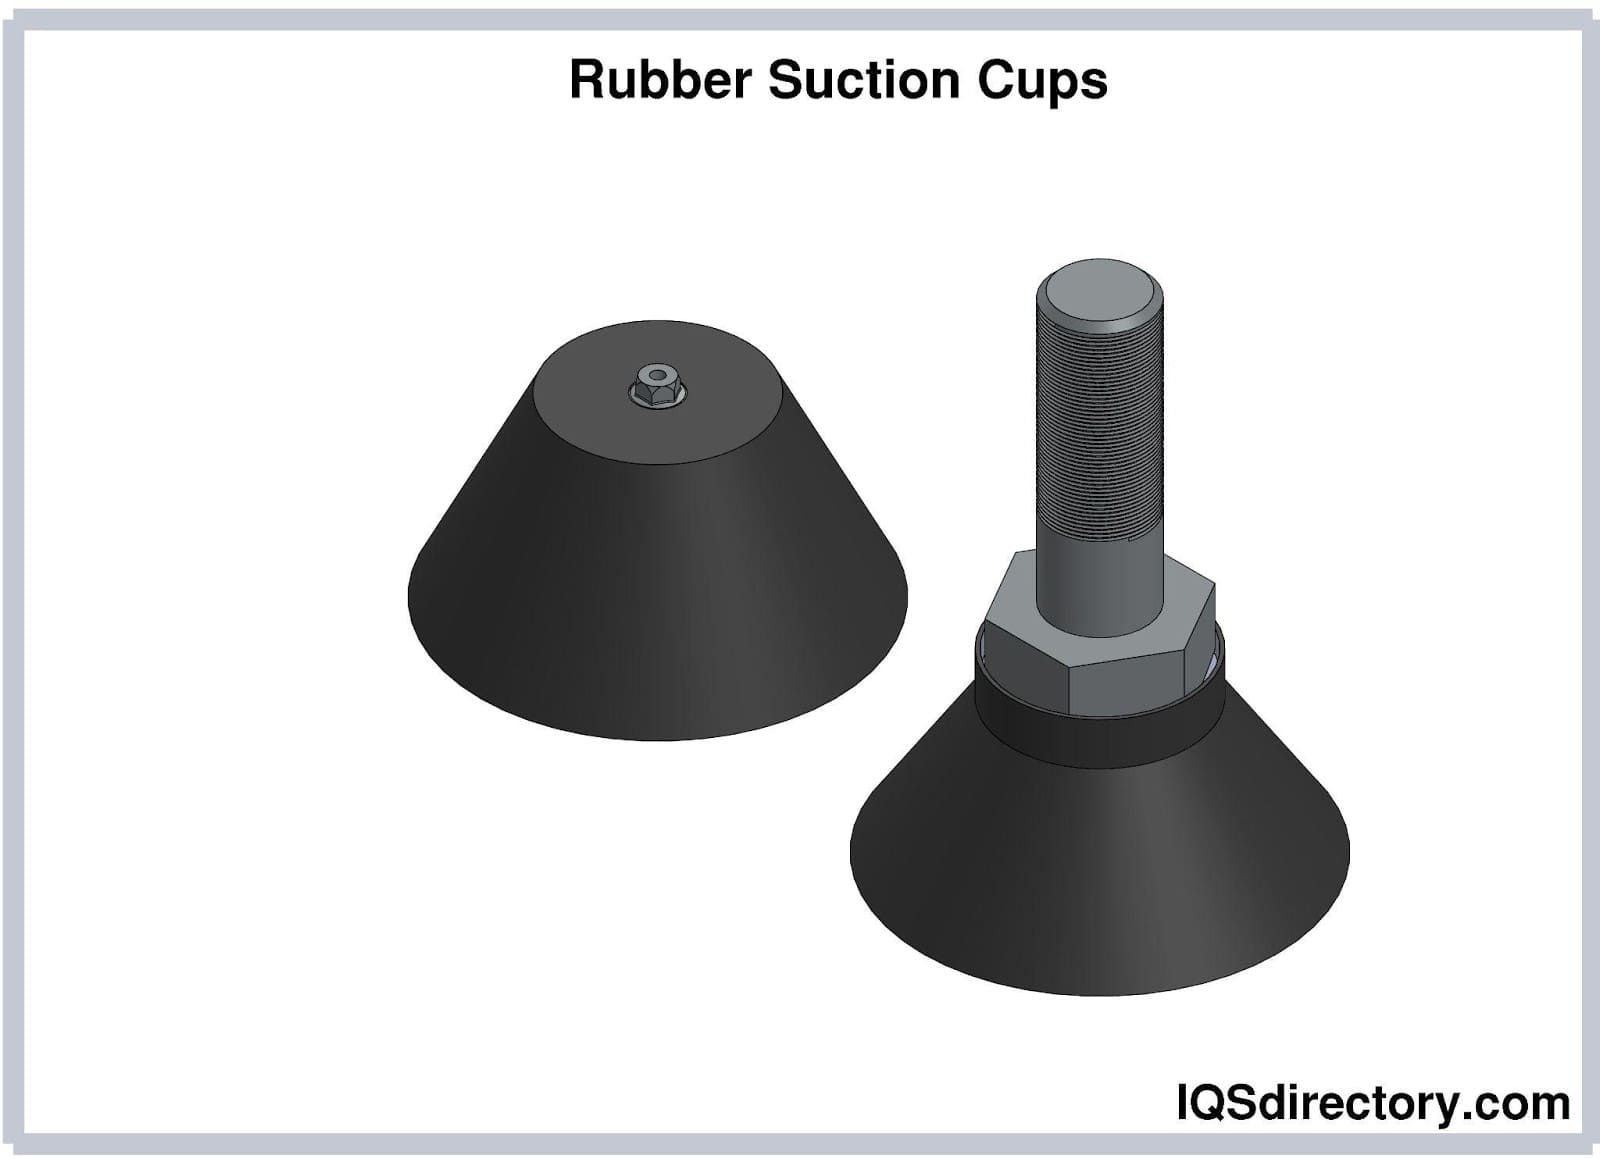 >Rubber Suction Cups